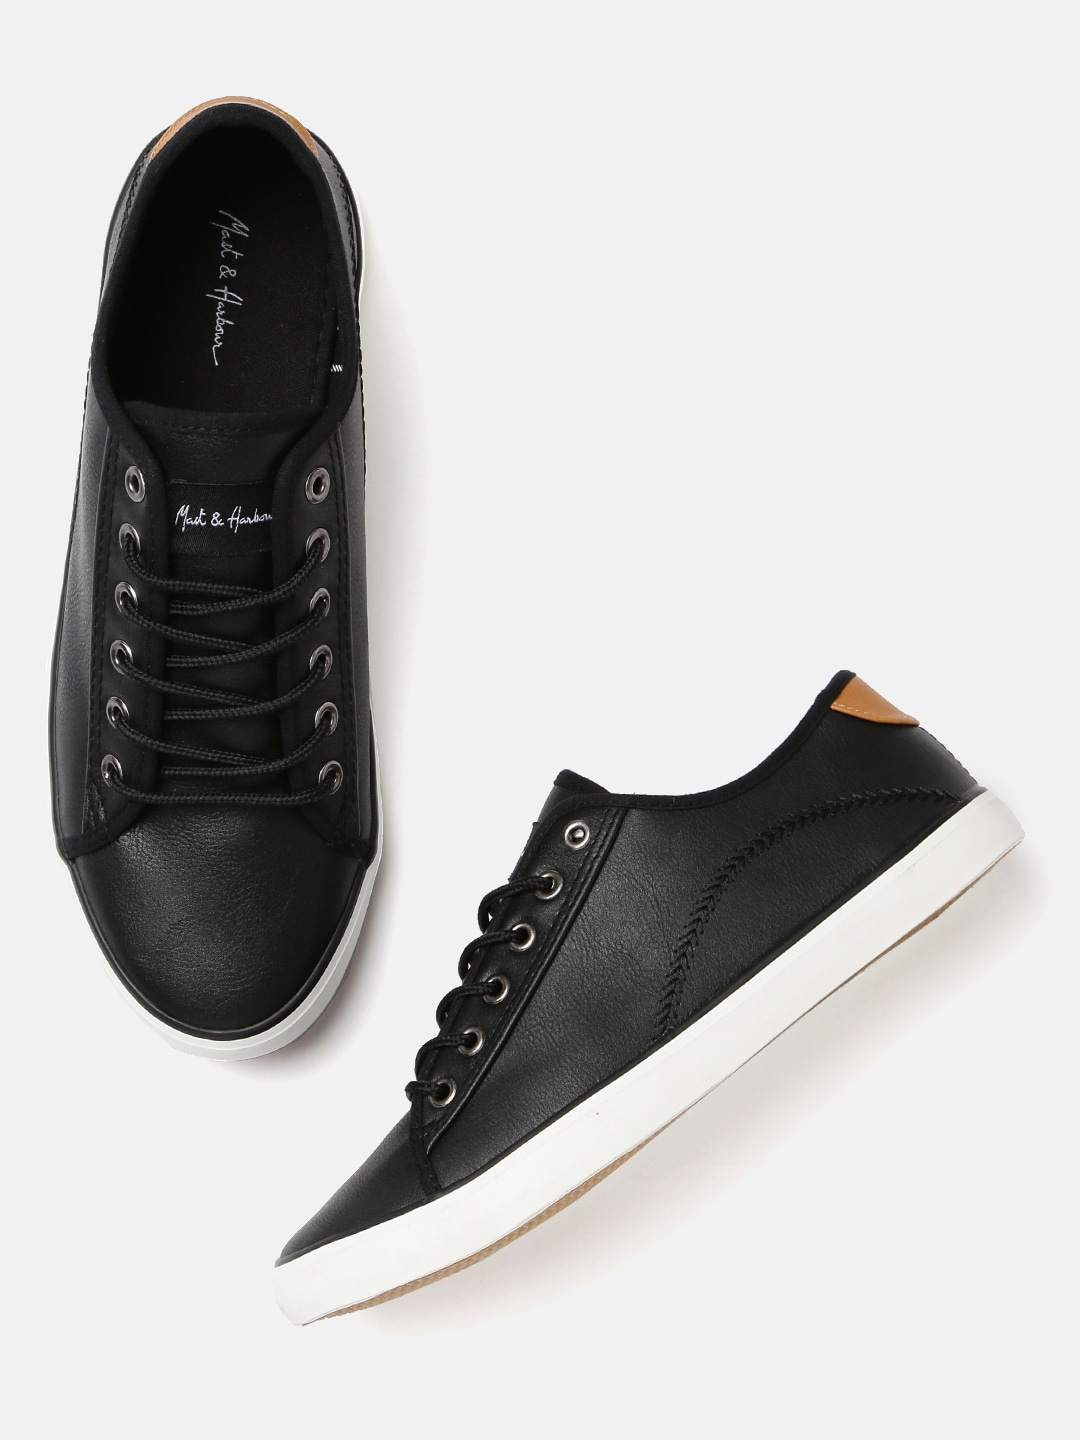 Mast & Harbour Men Black Sneakers image